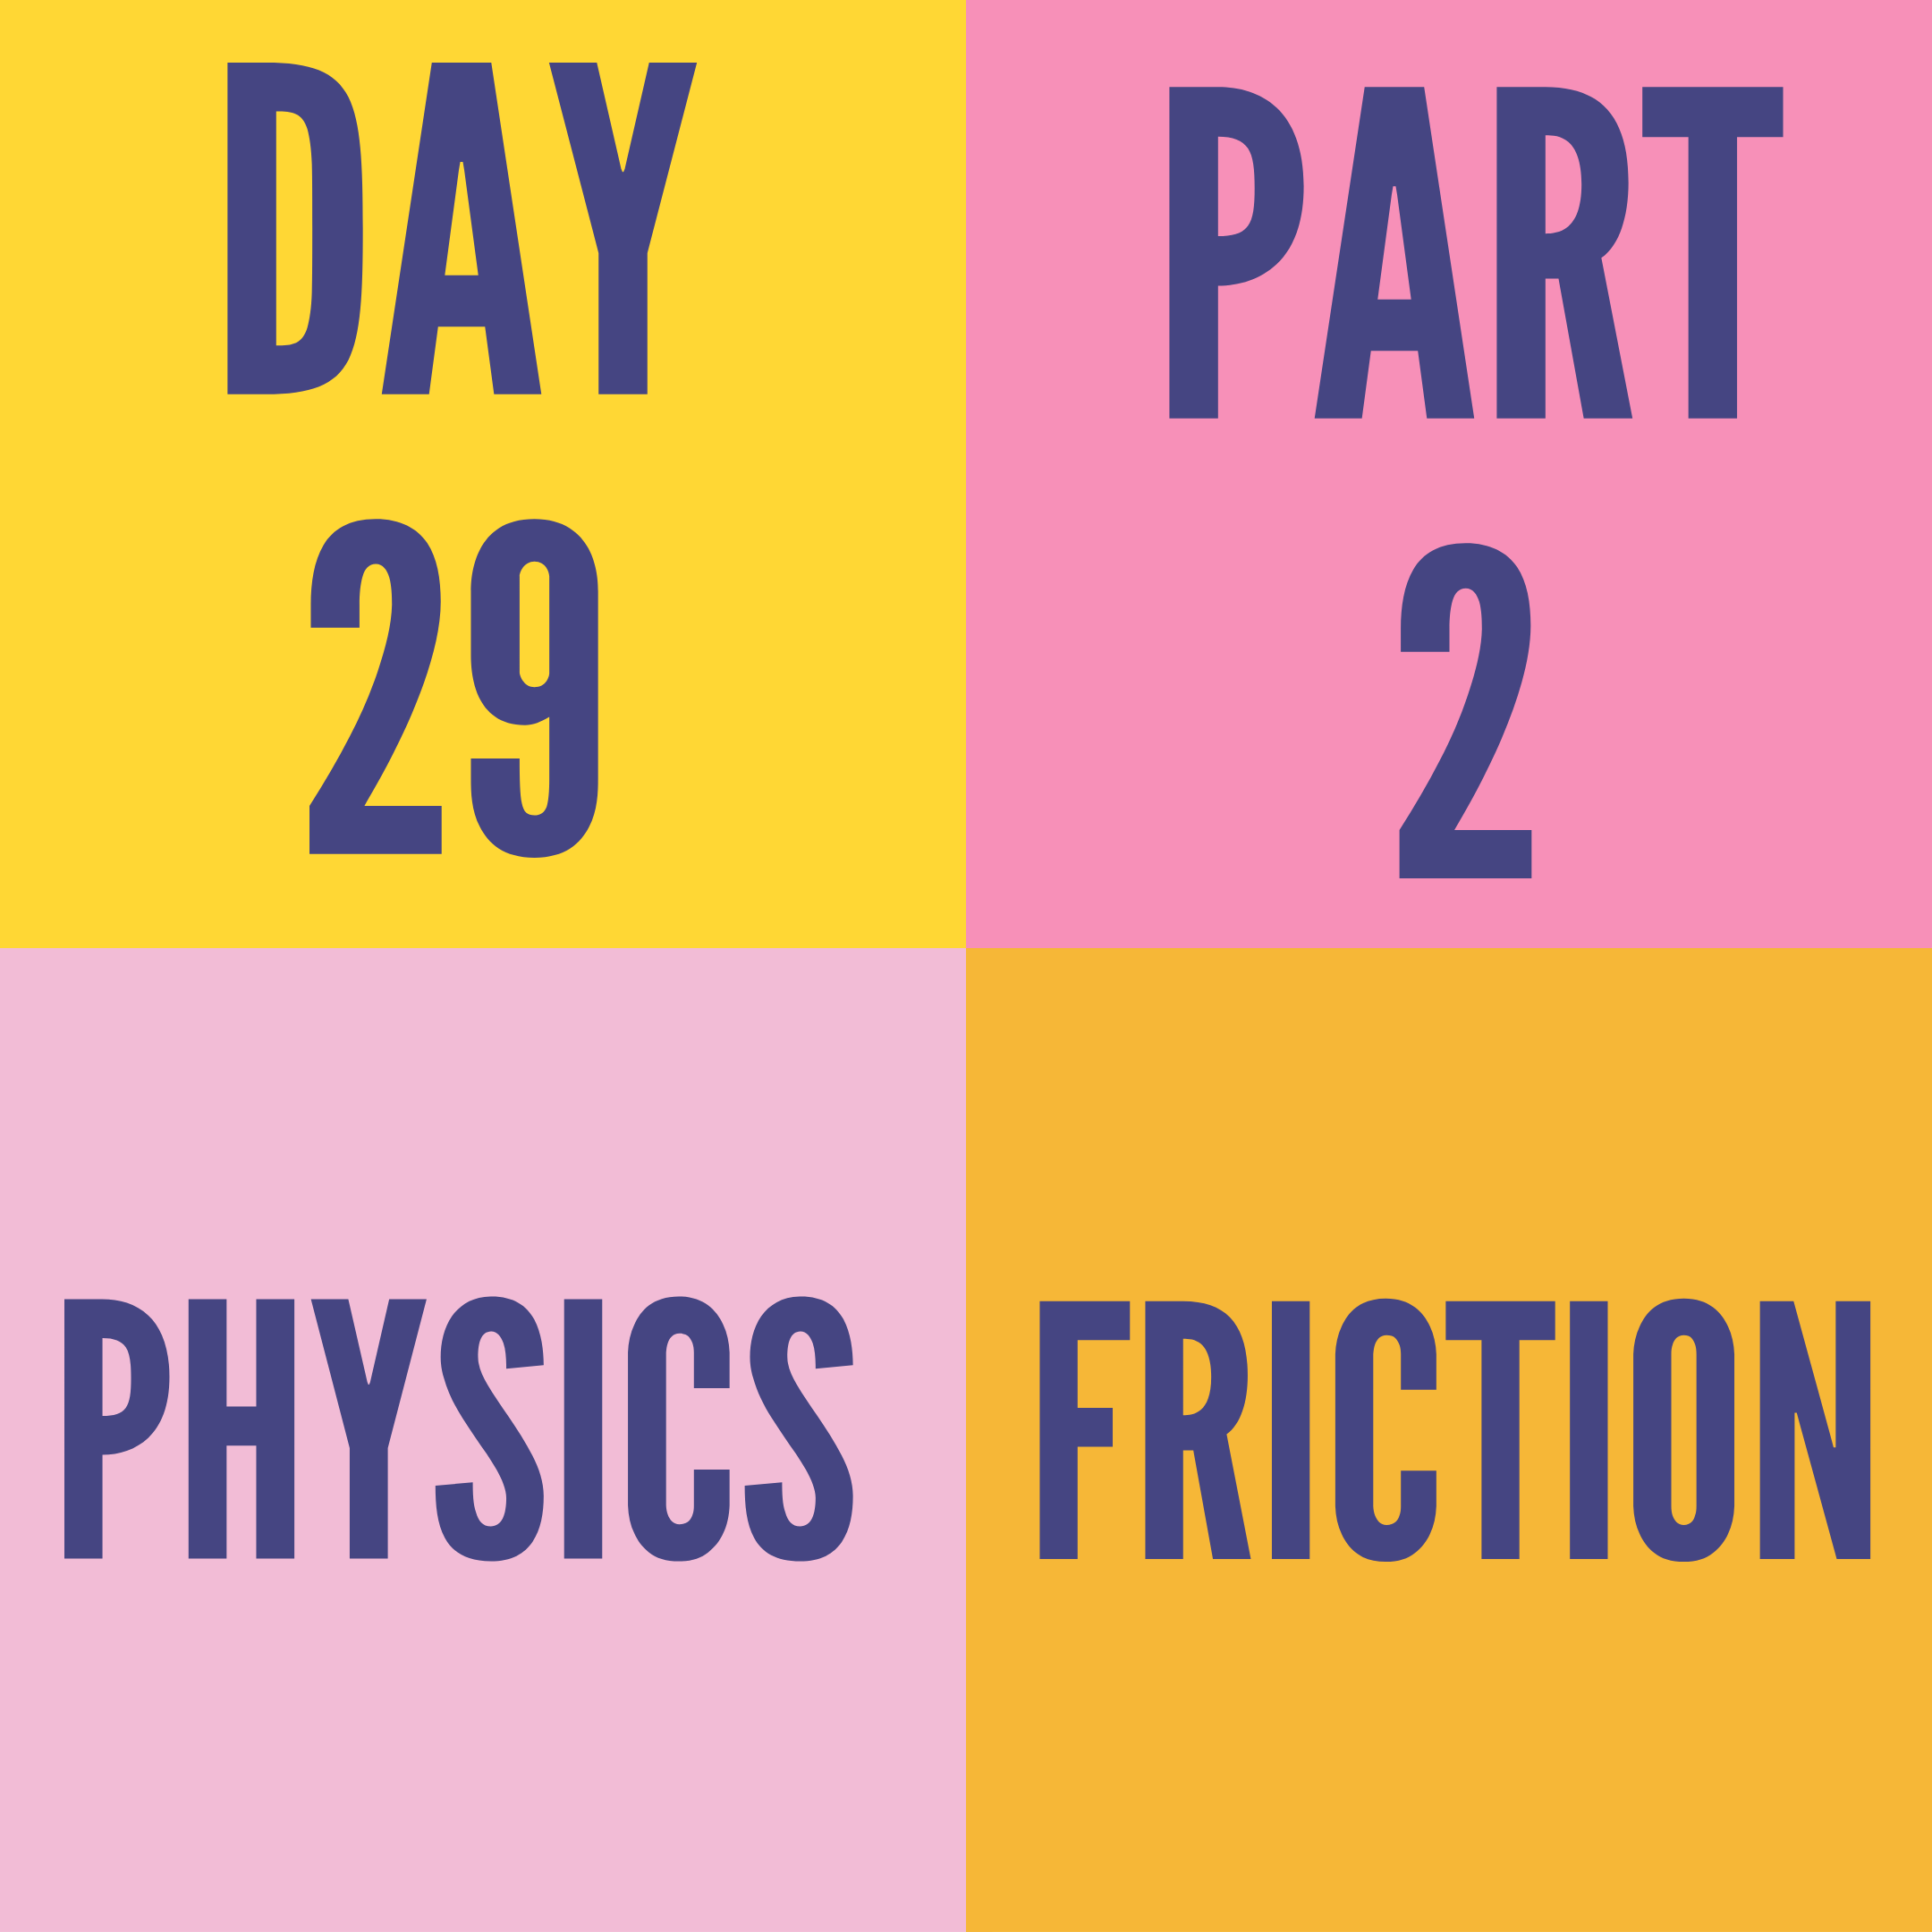 DAY-29 PART-2 FRICTION